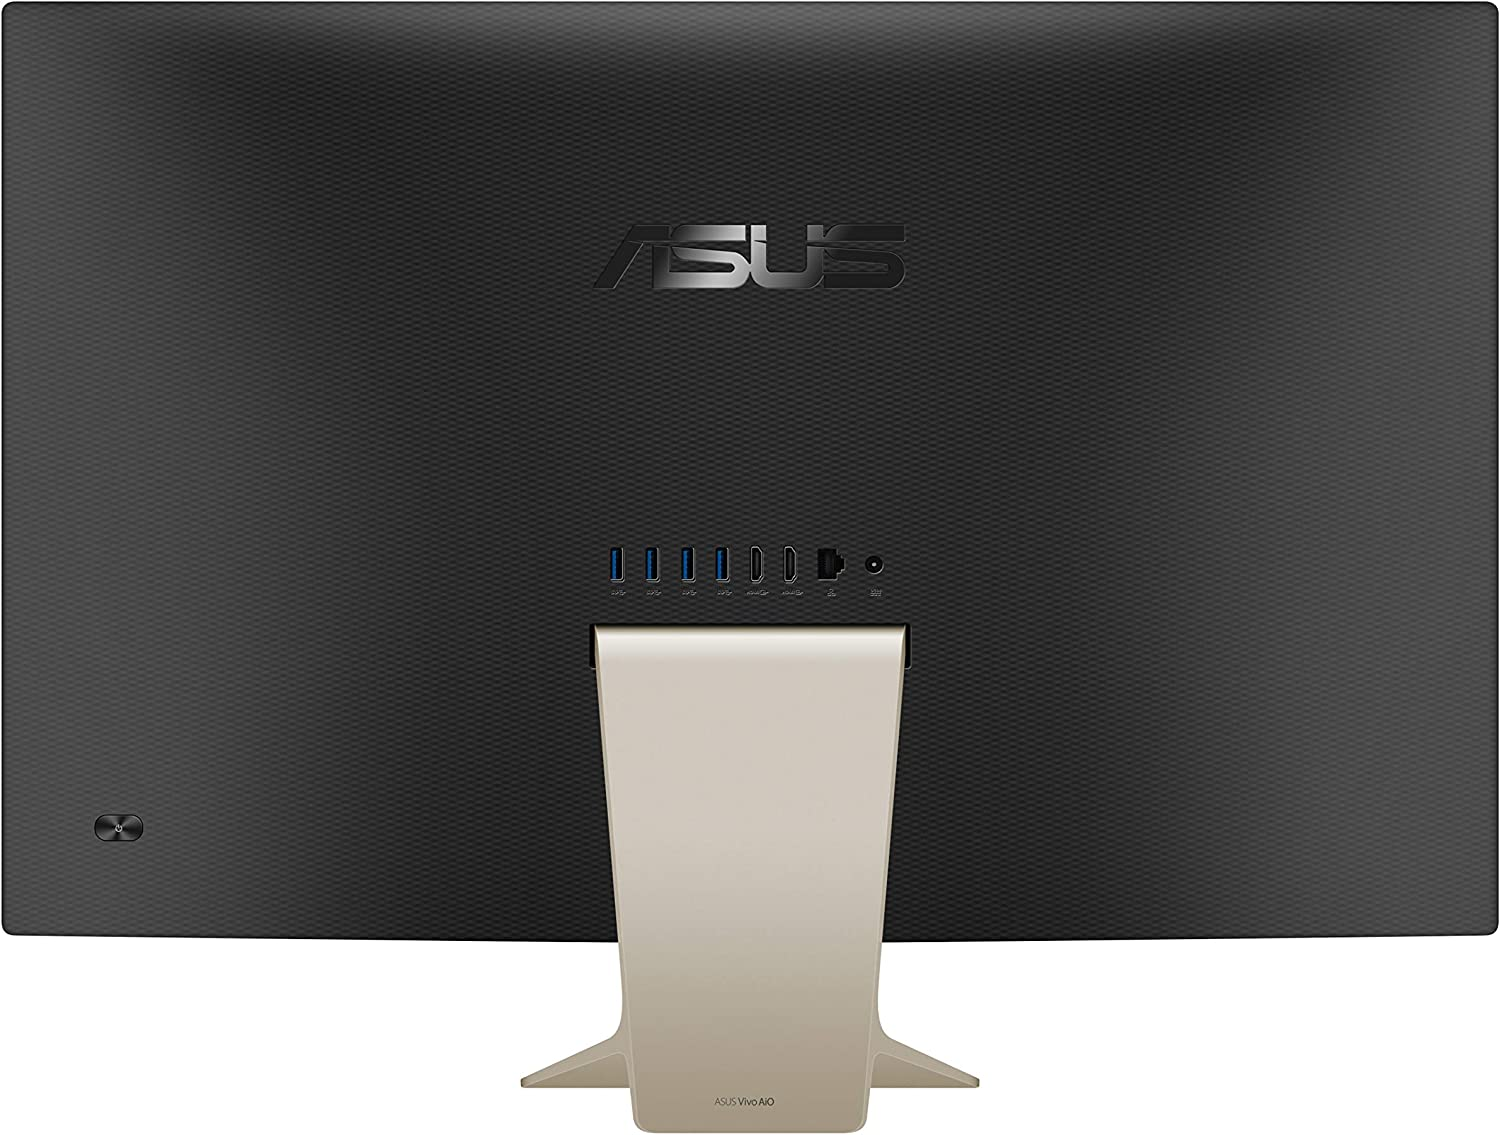 """256GB SSD 1TB HDD Wired Keyboard and Mouse Intel Core/™ i7-8550U 8GB RAM 802.11ac ASUS Vivo AiO 27/"""" All-in-One Touchscreen Desktop HD Webcam"""